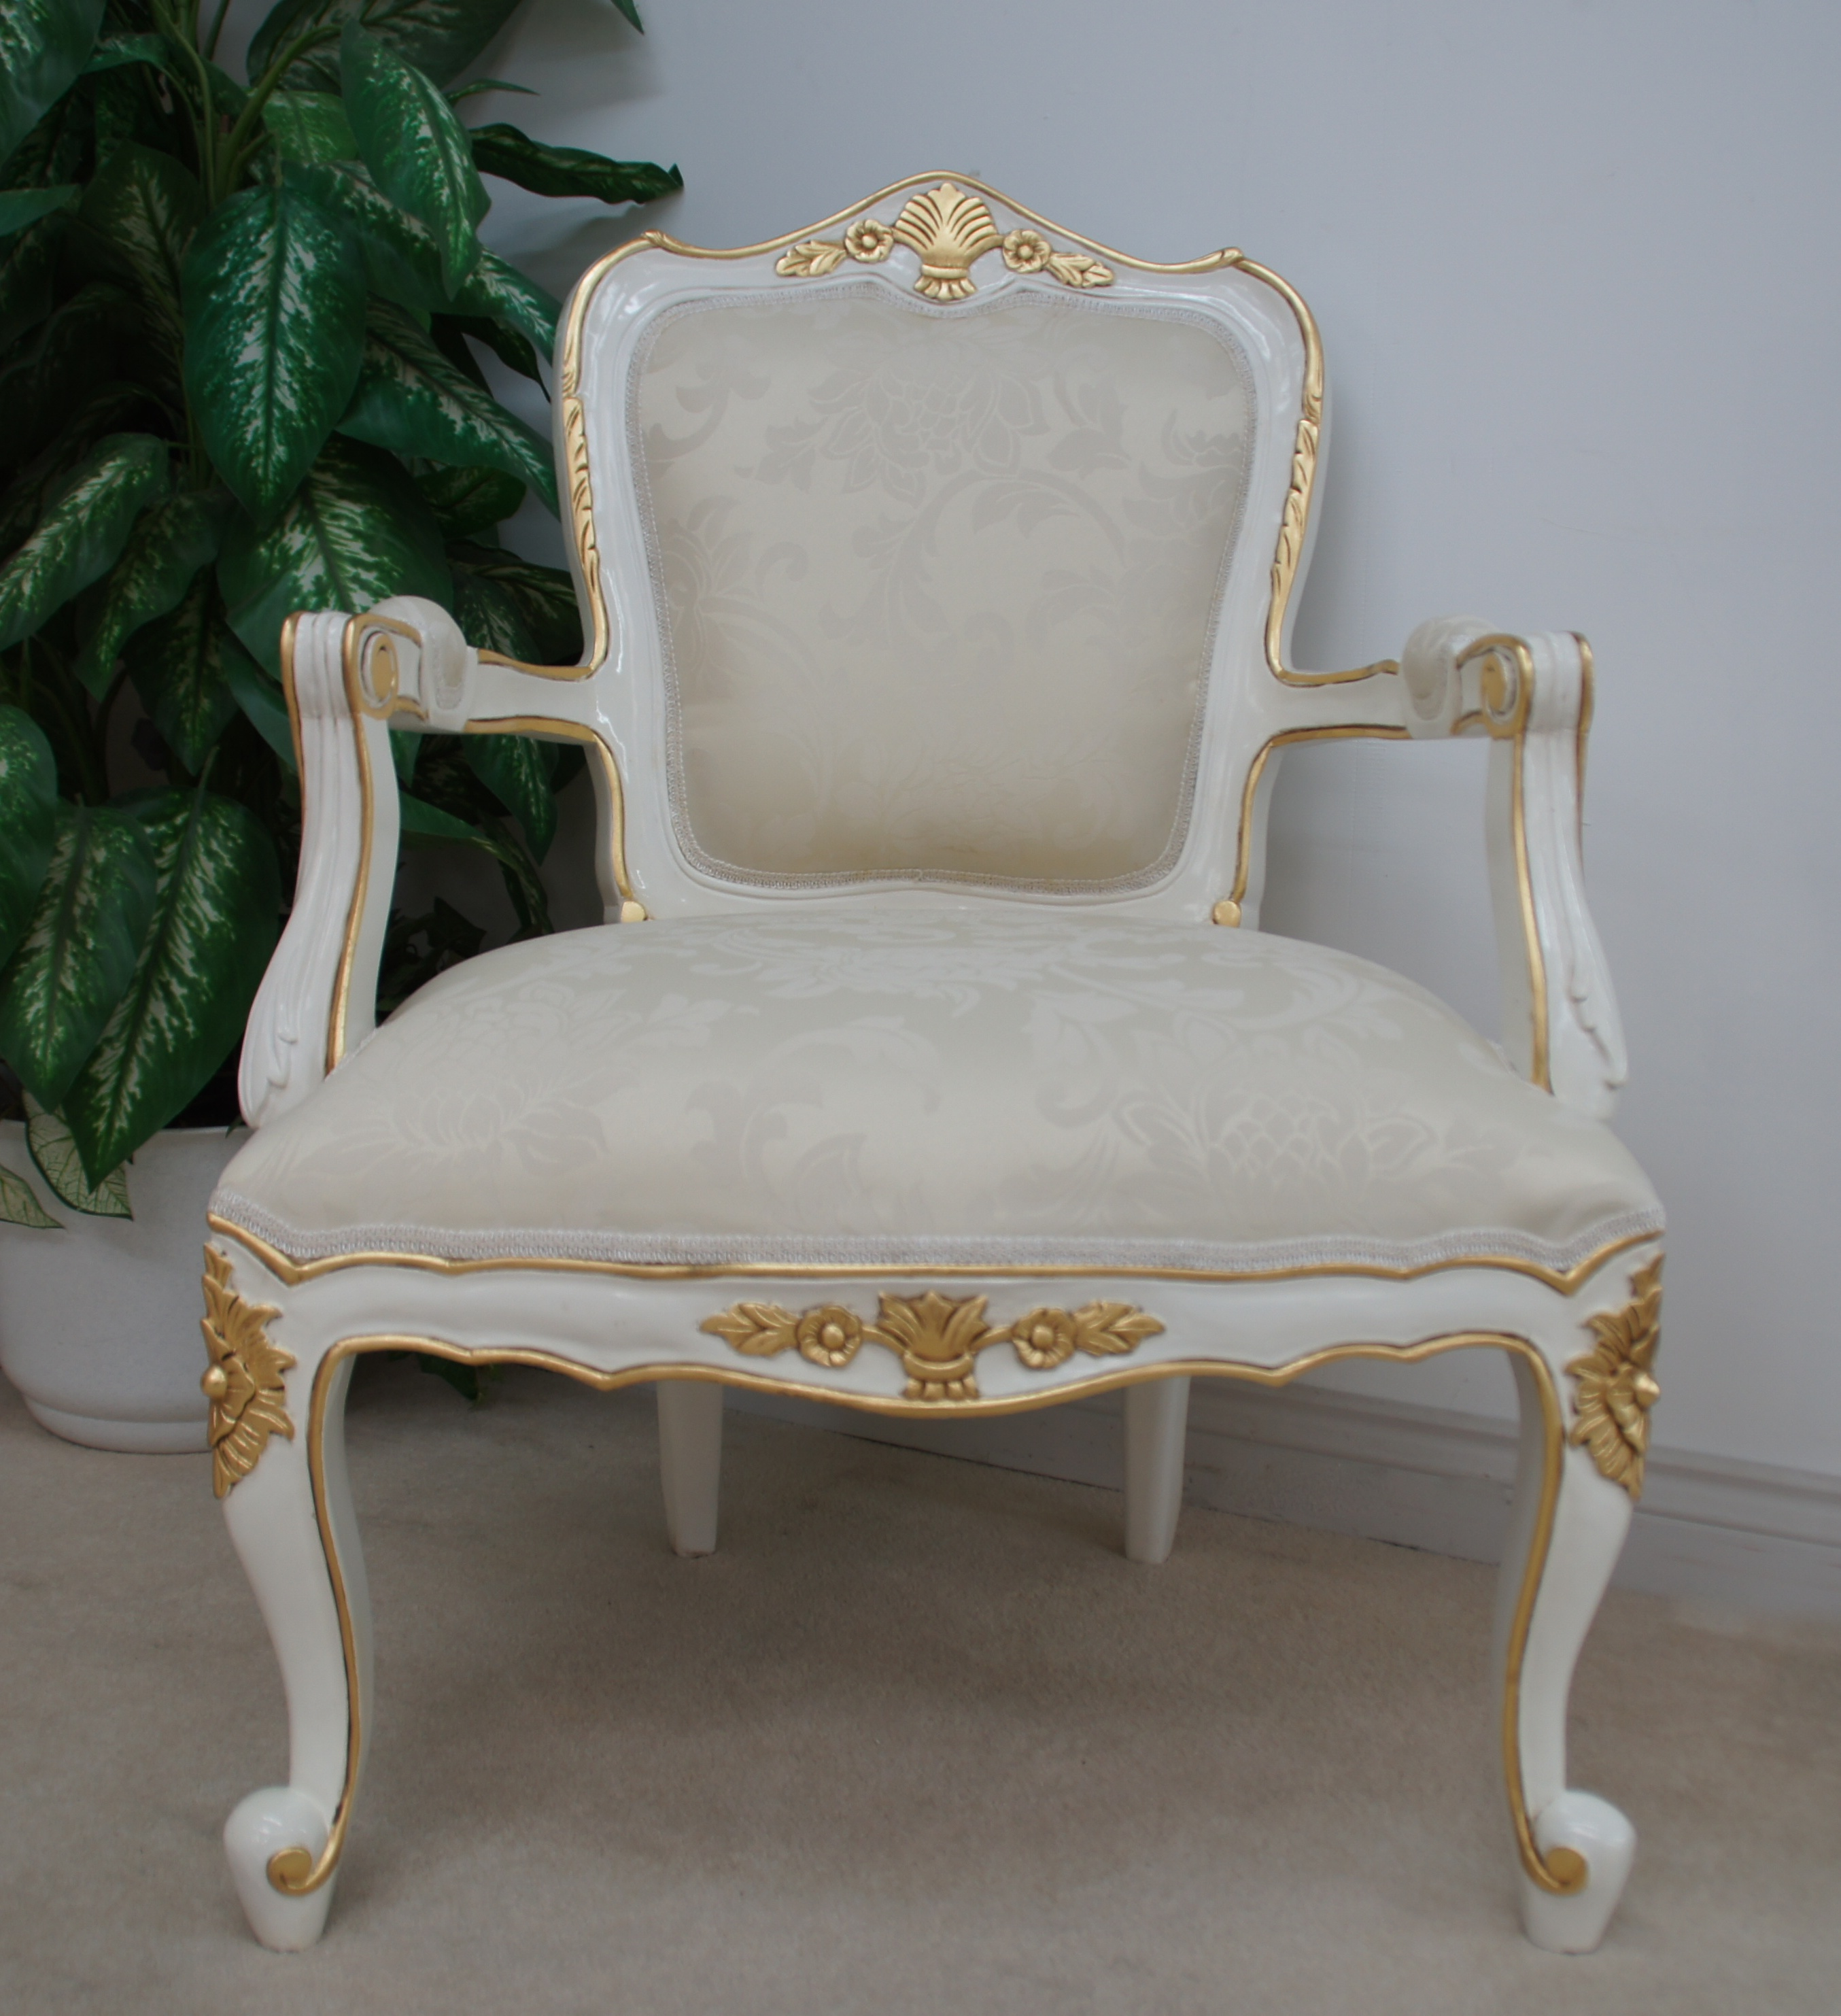 french sofas and chairs living room sofa bed sets large chair in white painted finish with